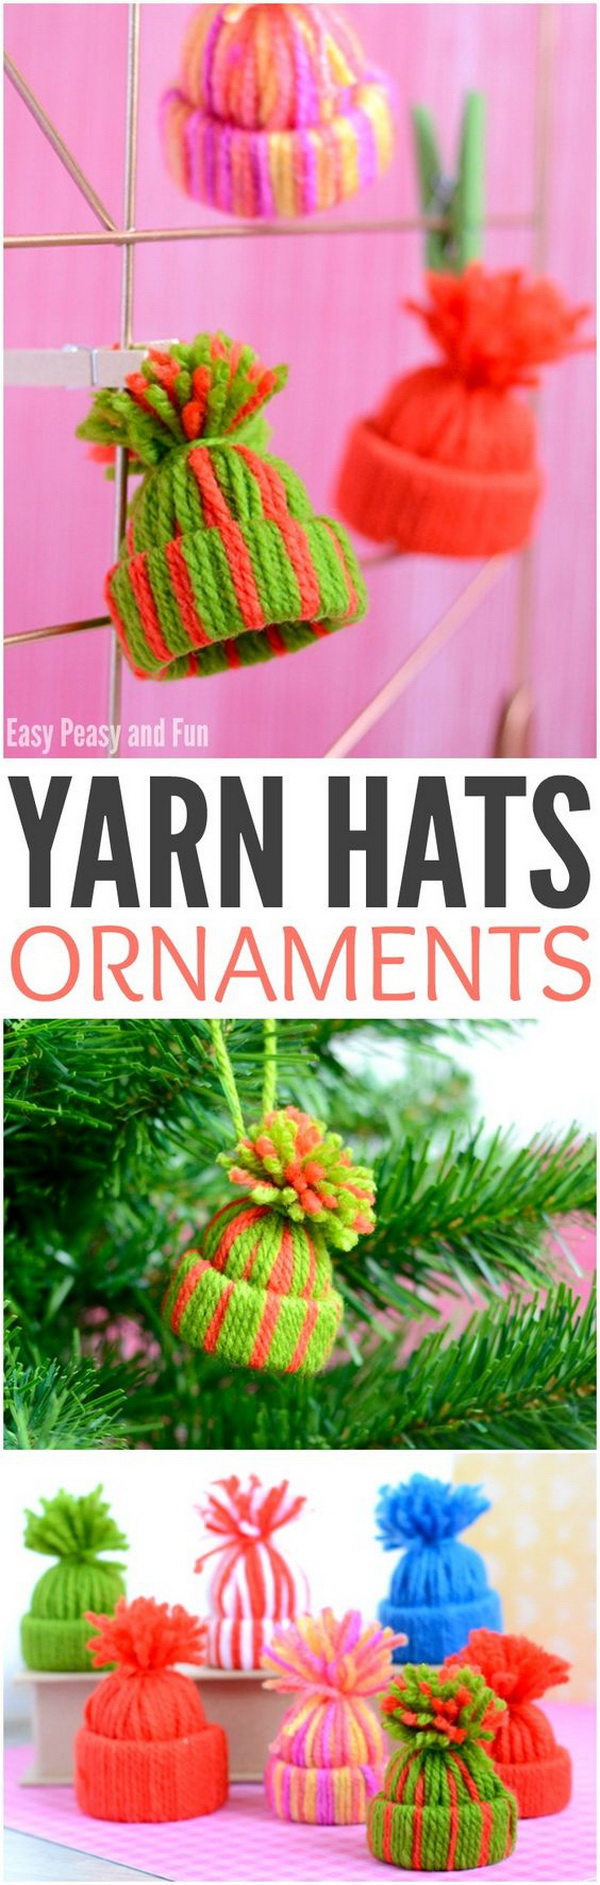 45 Personalized Diy Christmas Ornament Ideas For Creative